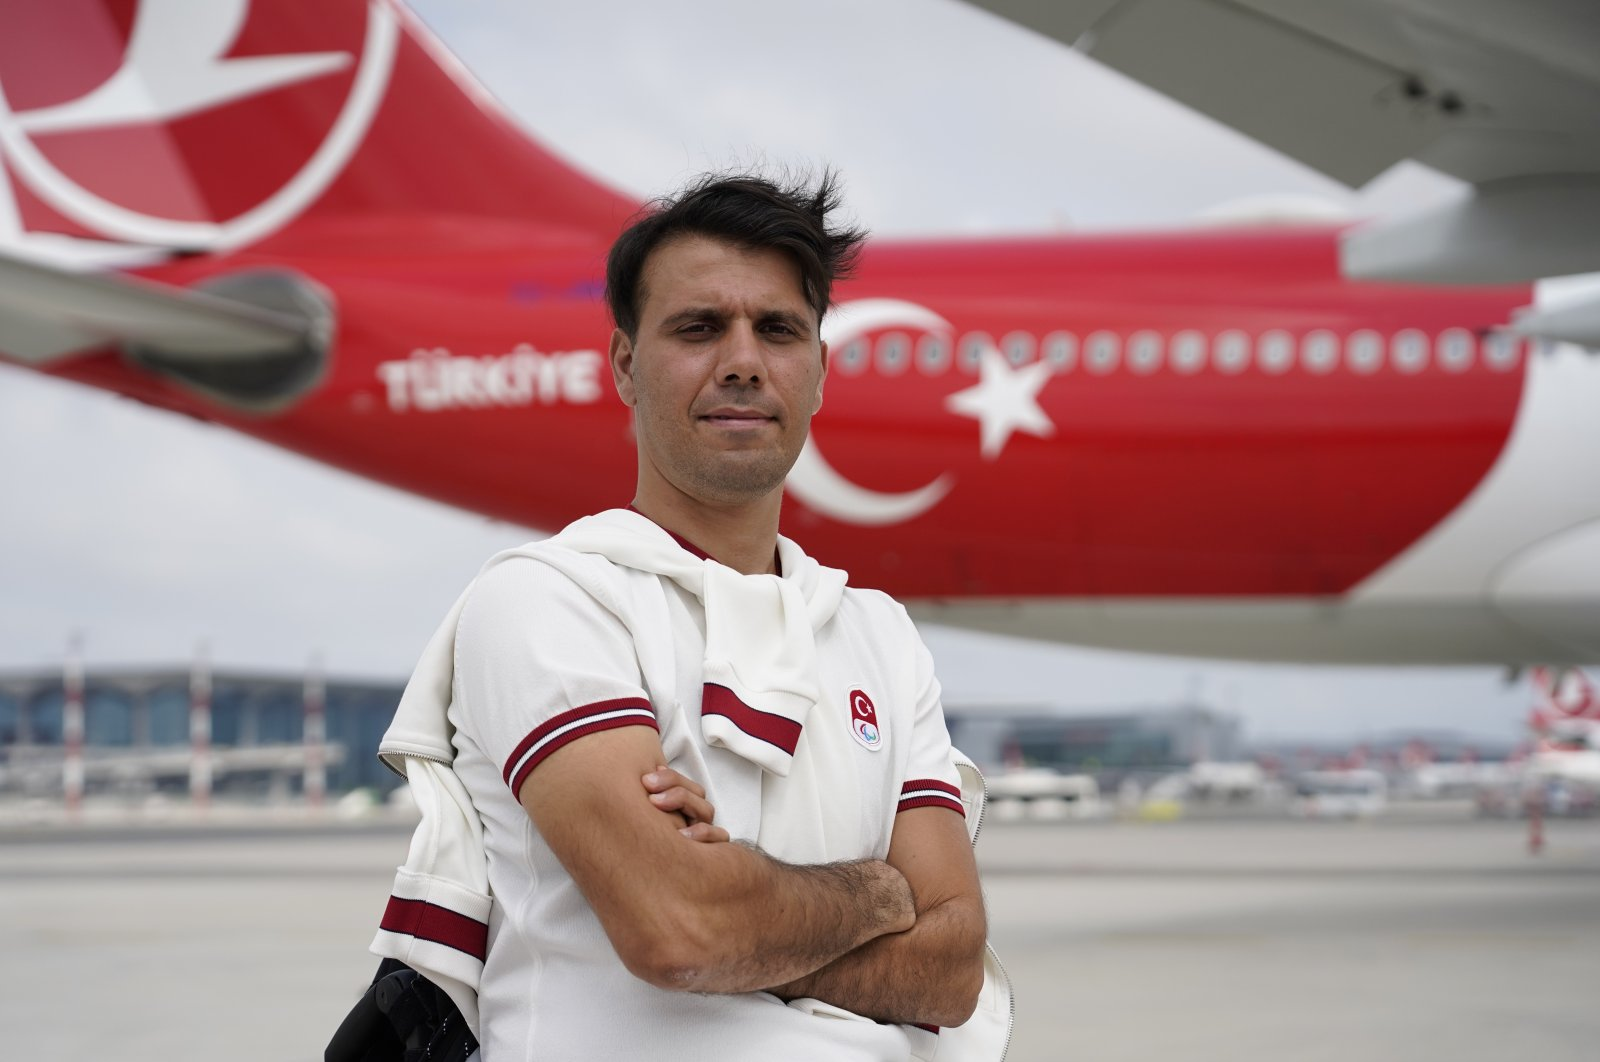 Turkish Paralympic archer Nihat Türkmenoğlu poses for a photo at the Istanbul Airport before departing for the Tokyo 2020 Paralympics, Istanbul, Turkey. (IHA Photo)